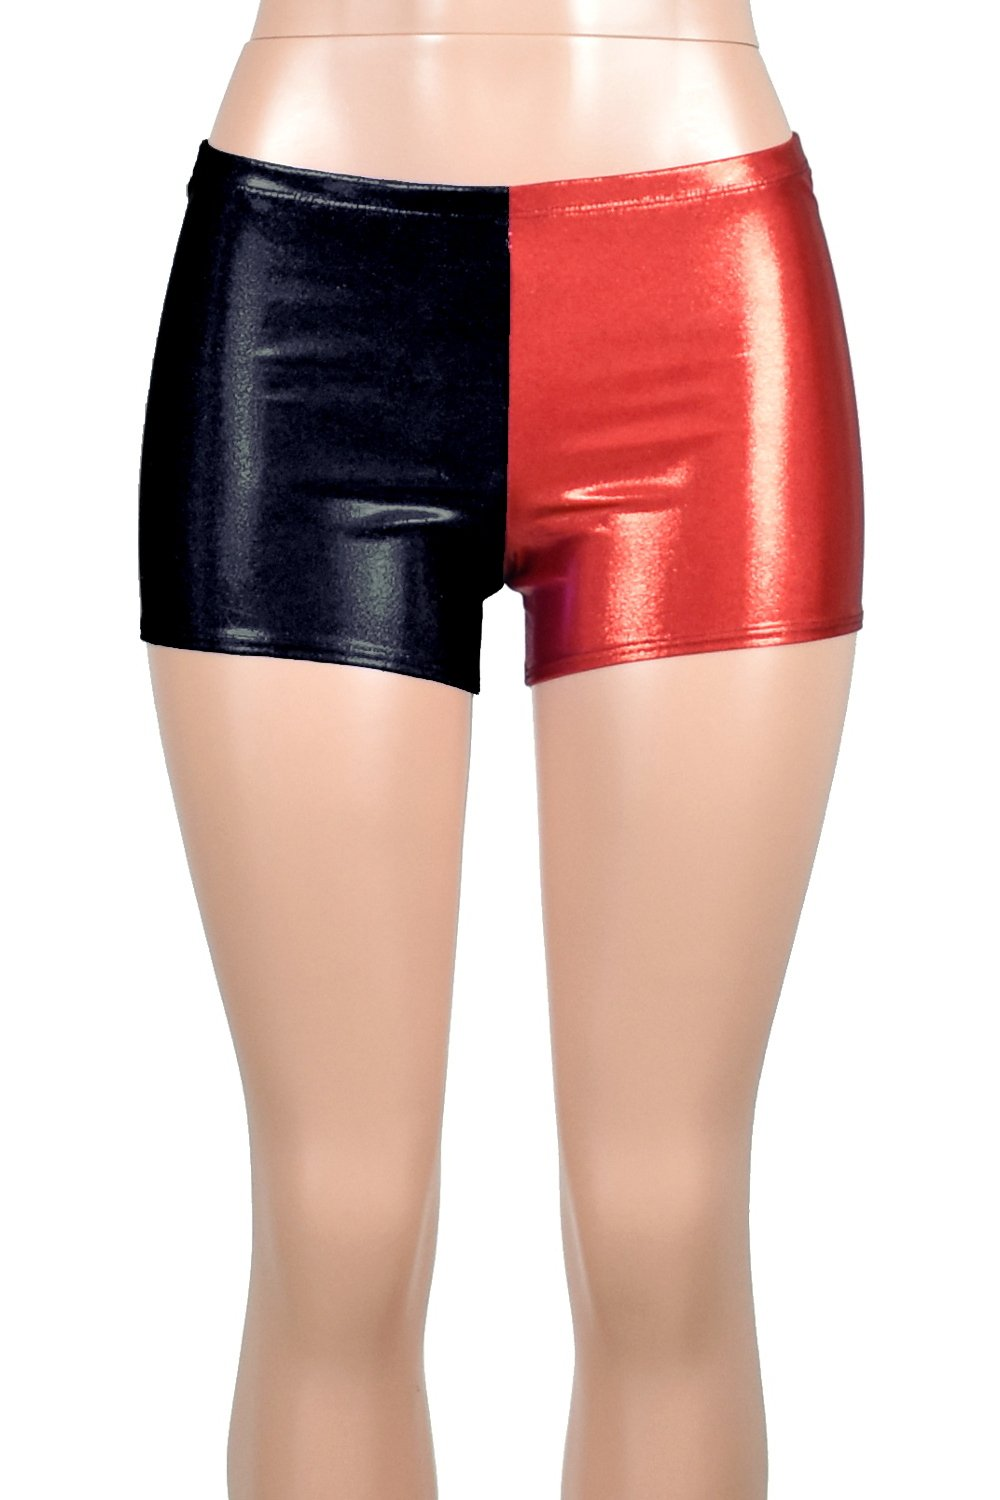 Red and black harley quinn shorts